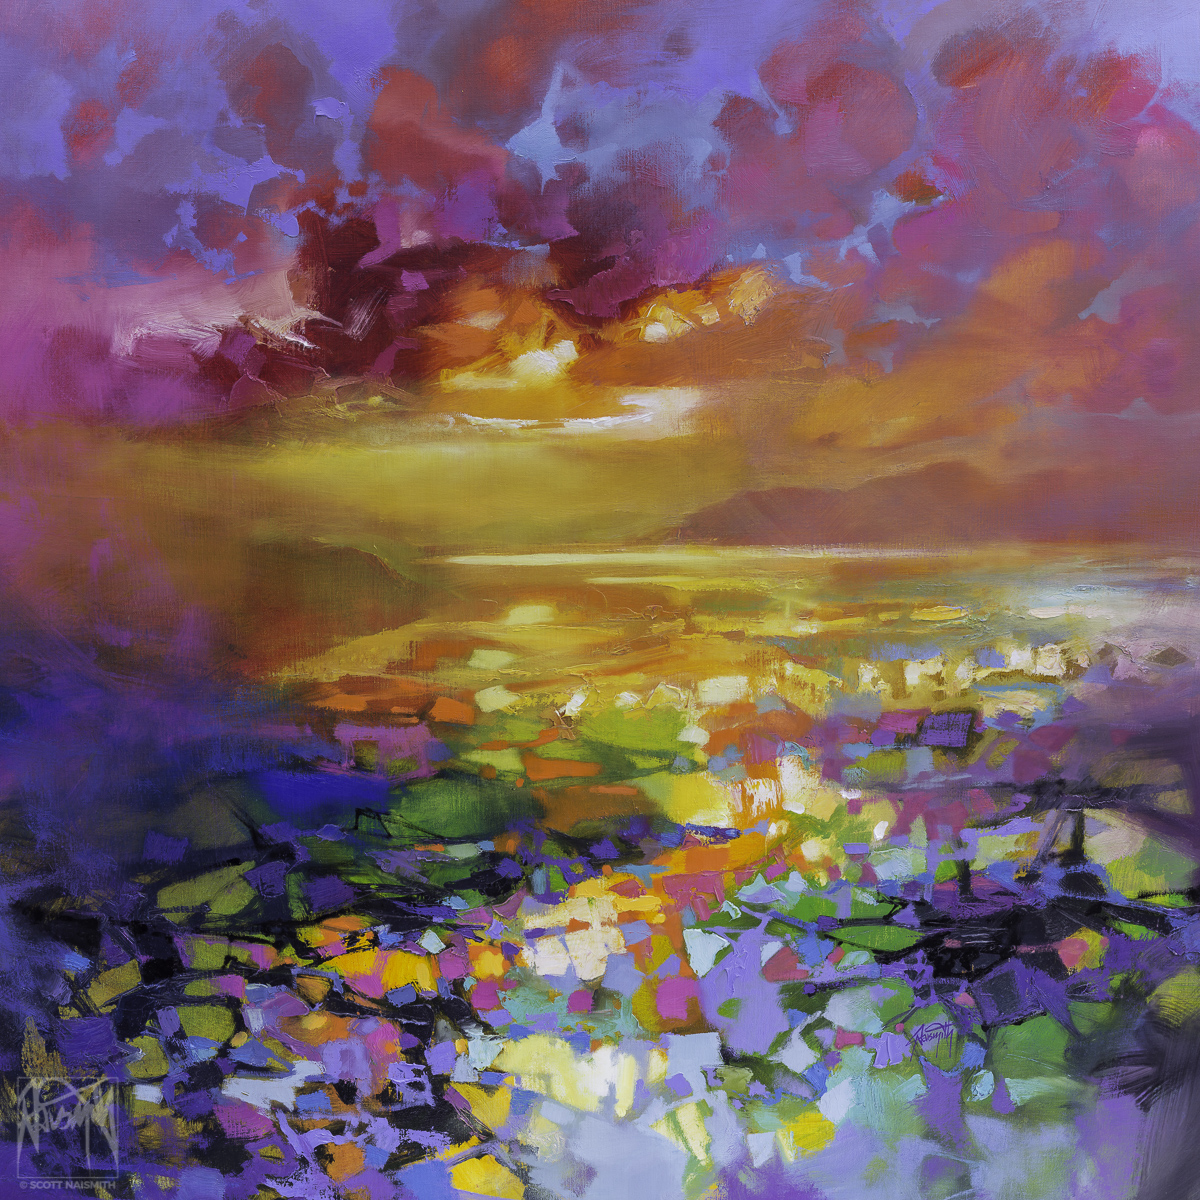 'Colour Frequency I' by Scott Naismith